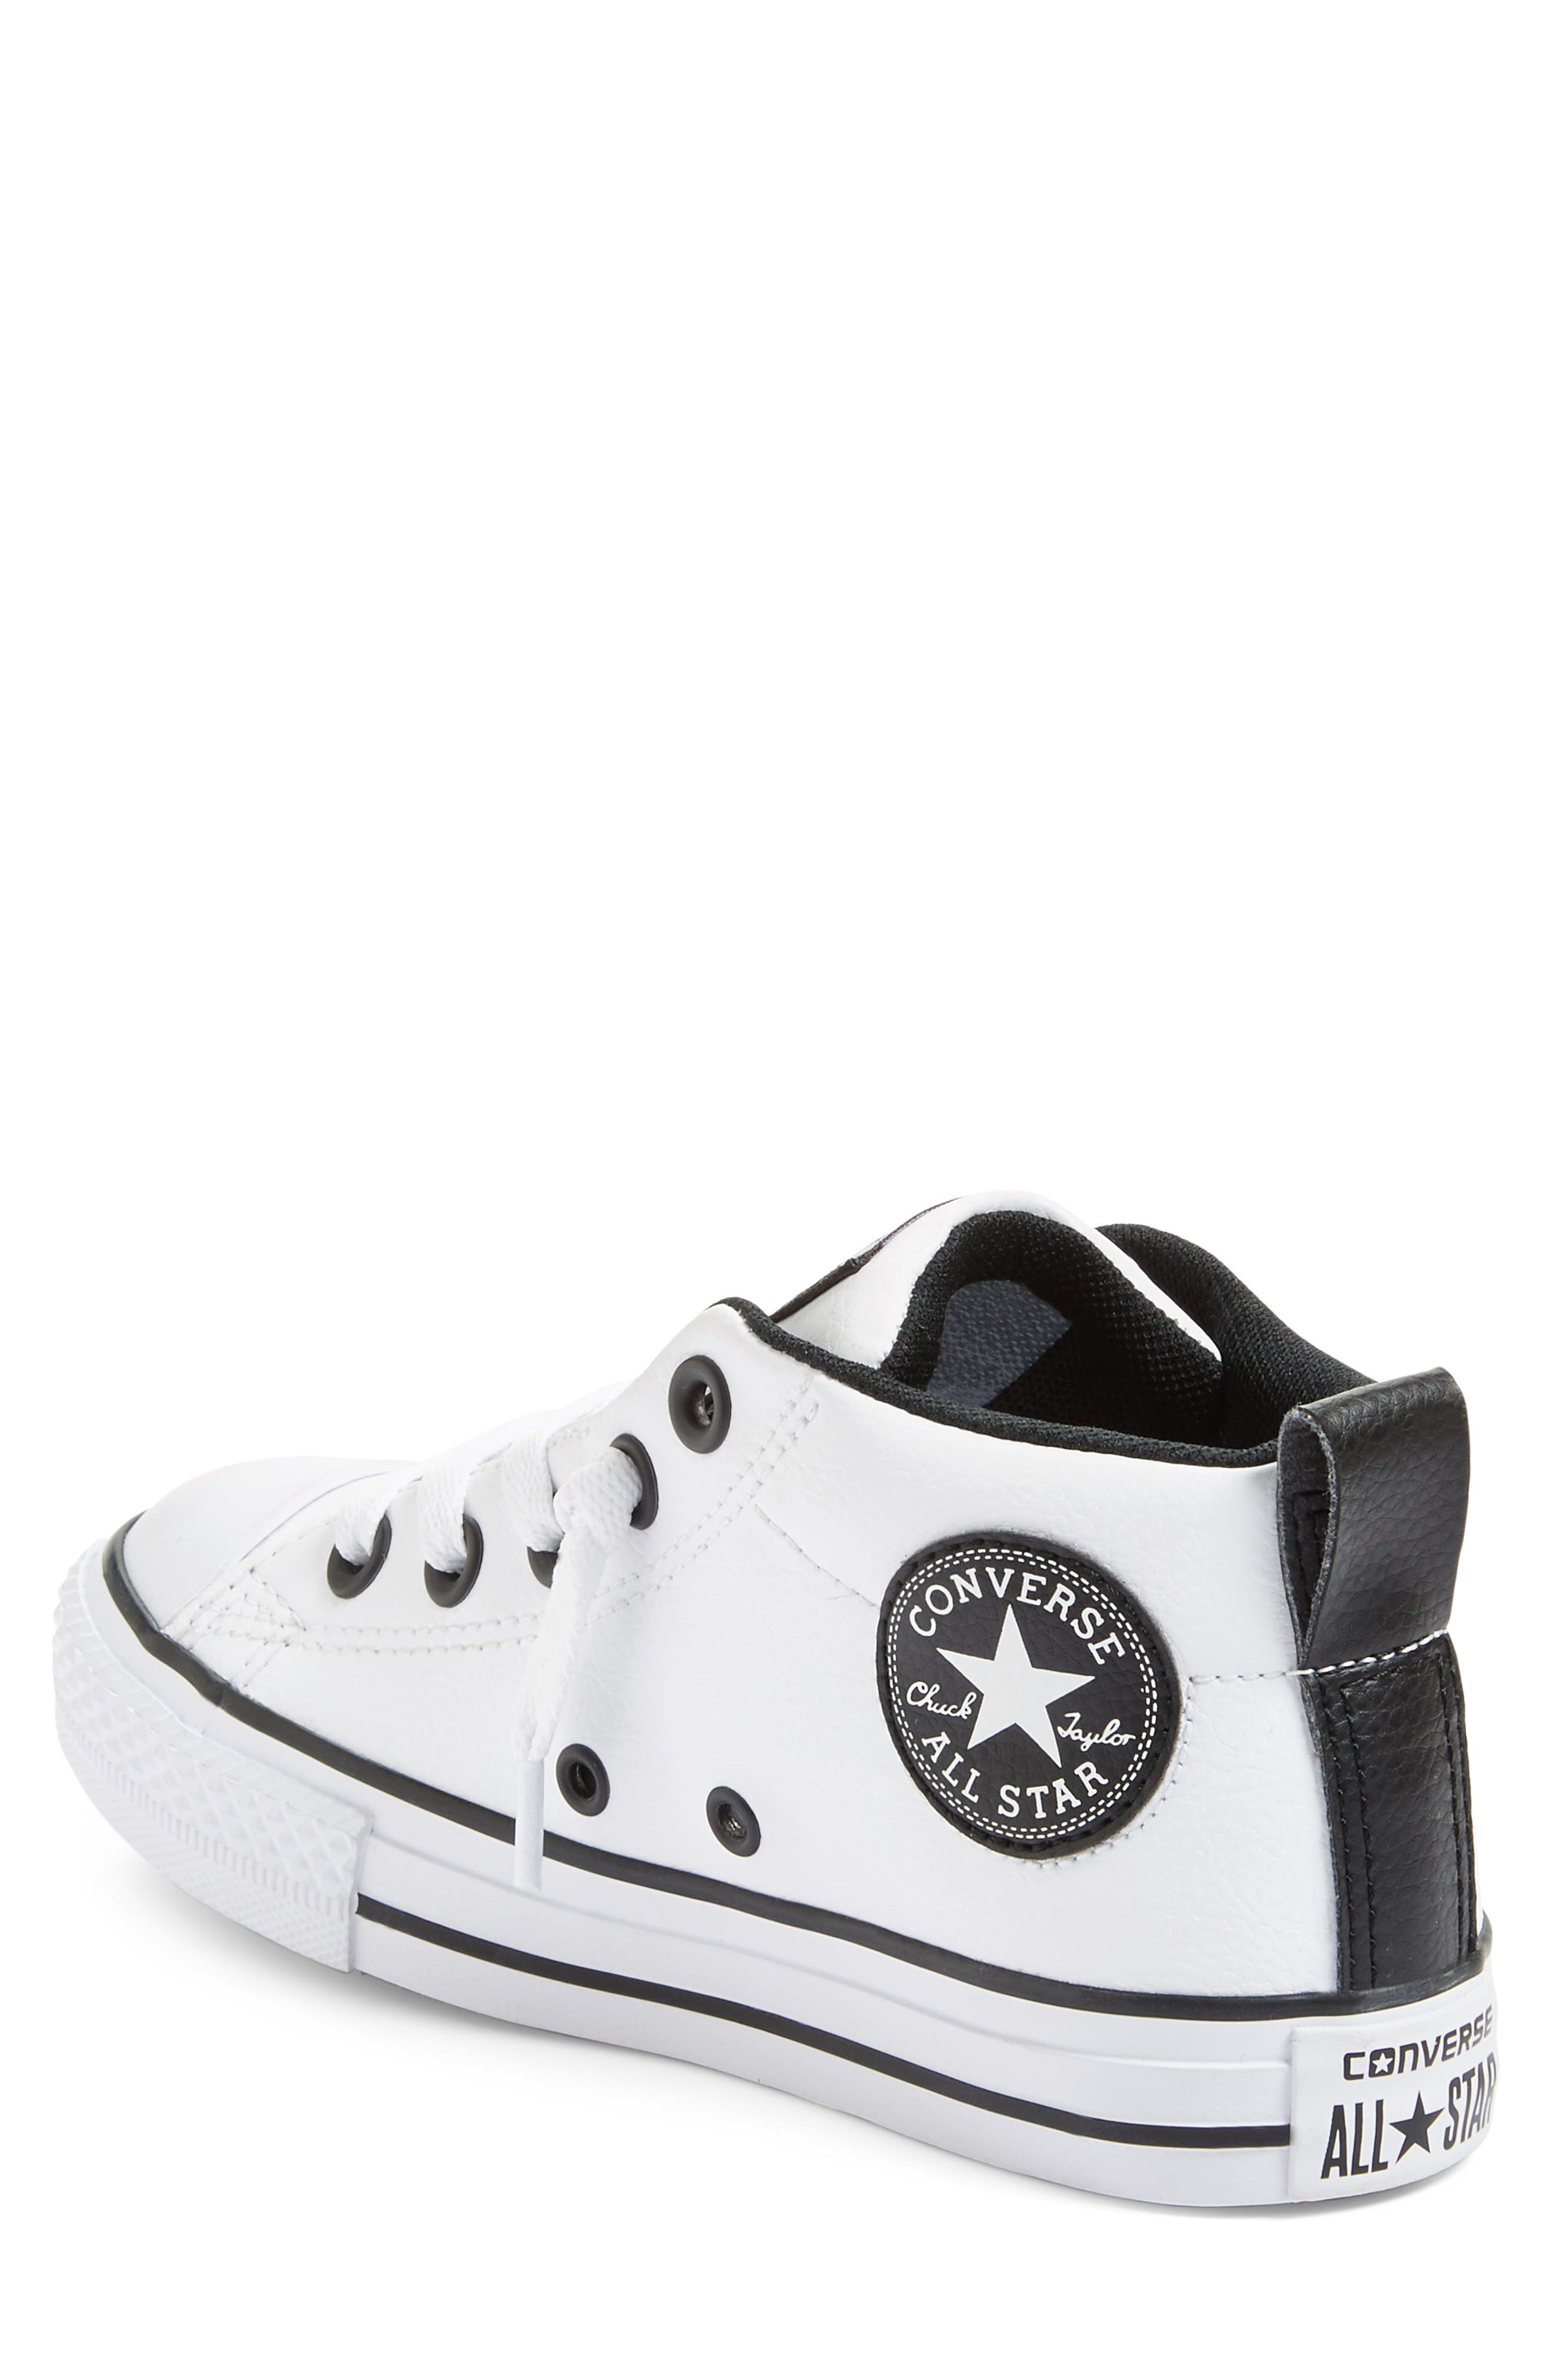 Chuck Taylor<sup>®</sup> All Star<sup>®</sup> Mid High Sneaker,                             Alternate thumbnail 2, color,                             White/ Black